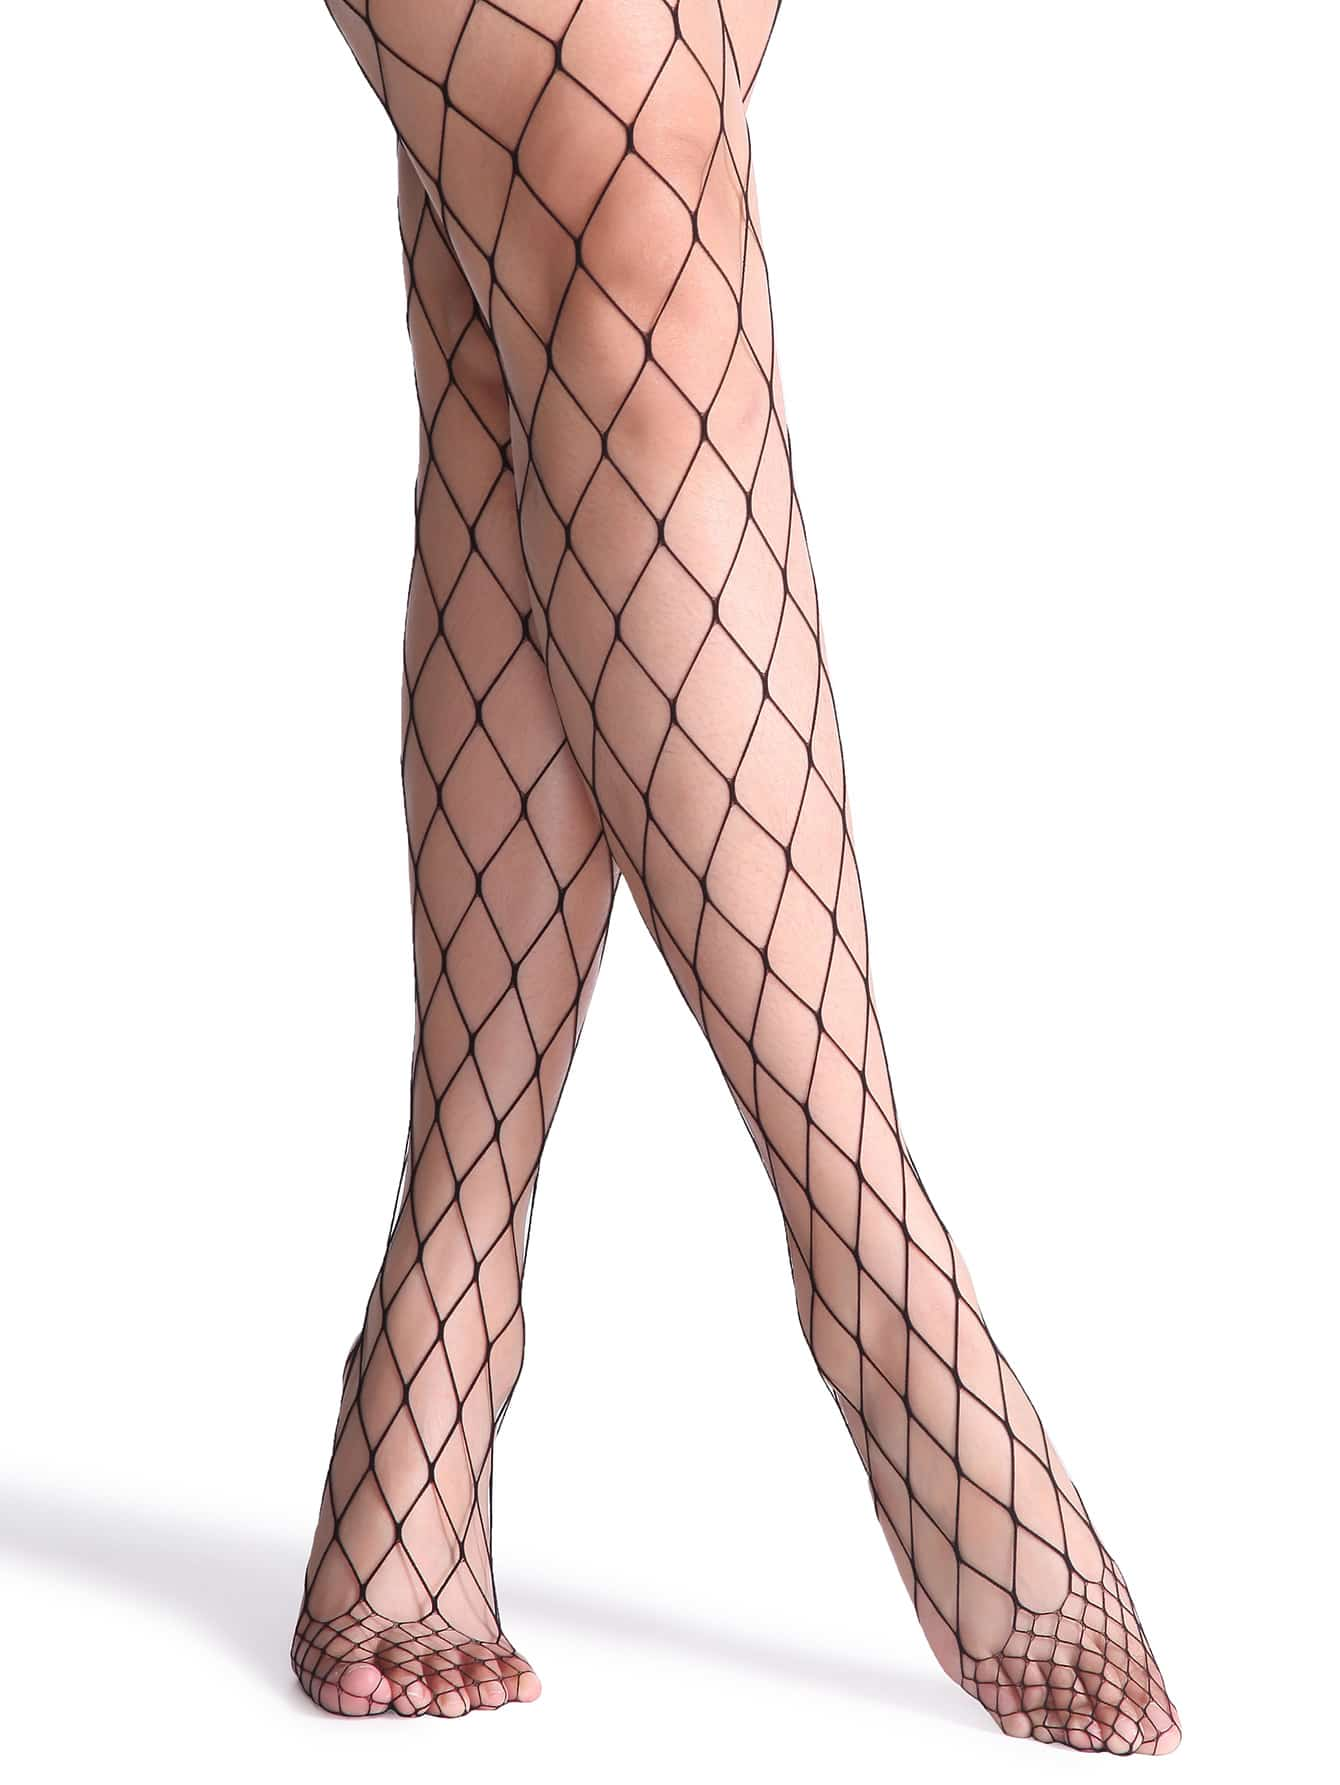 Black Sexy Fishnet Stockings 2015 new women sexy fishnet stockings fishnet pantyhose ladies mesh lingerie for female tights